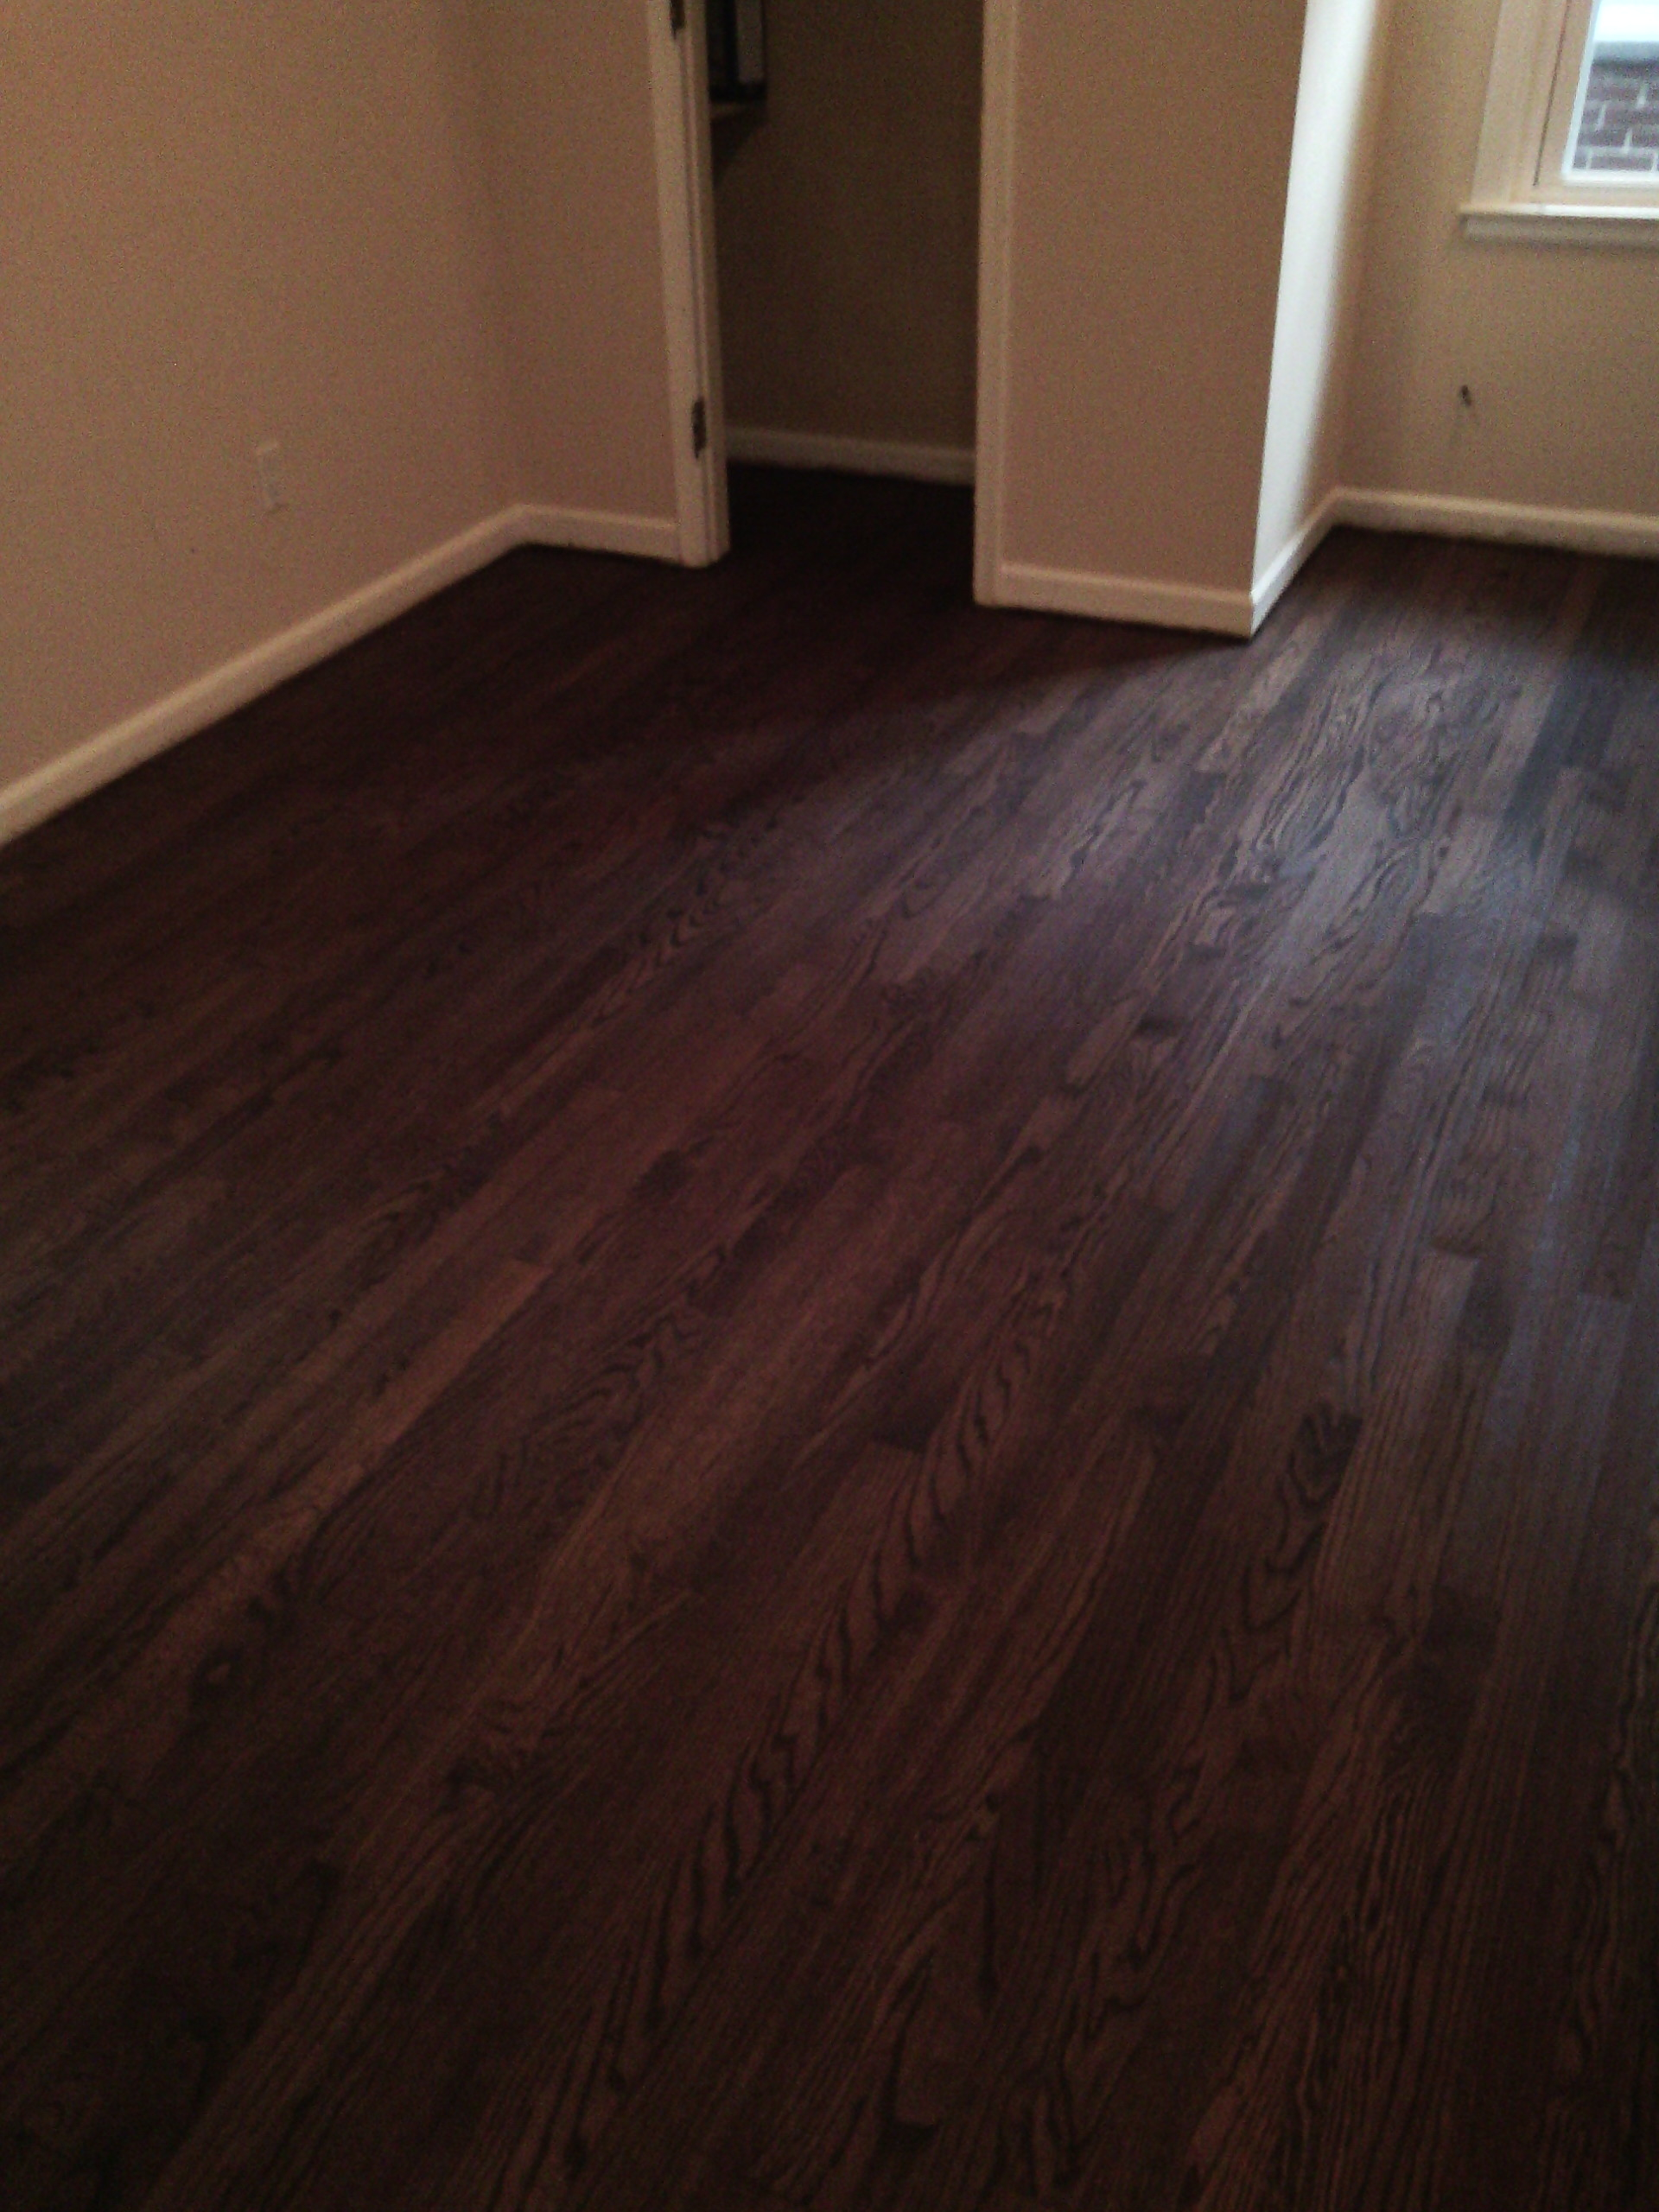 Finishing touch hardwood flooring inc in white lake mi for Hardwood flooring inc